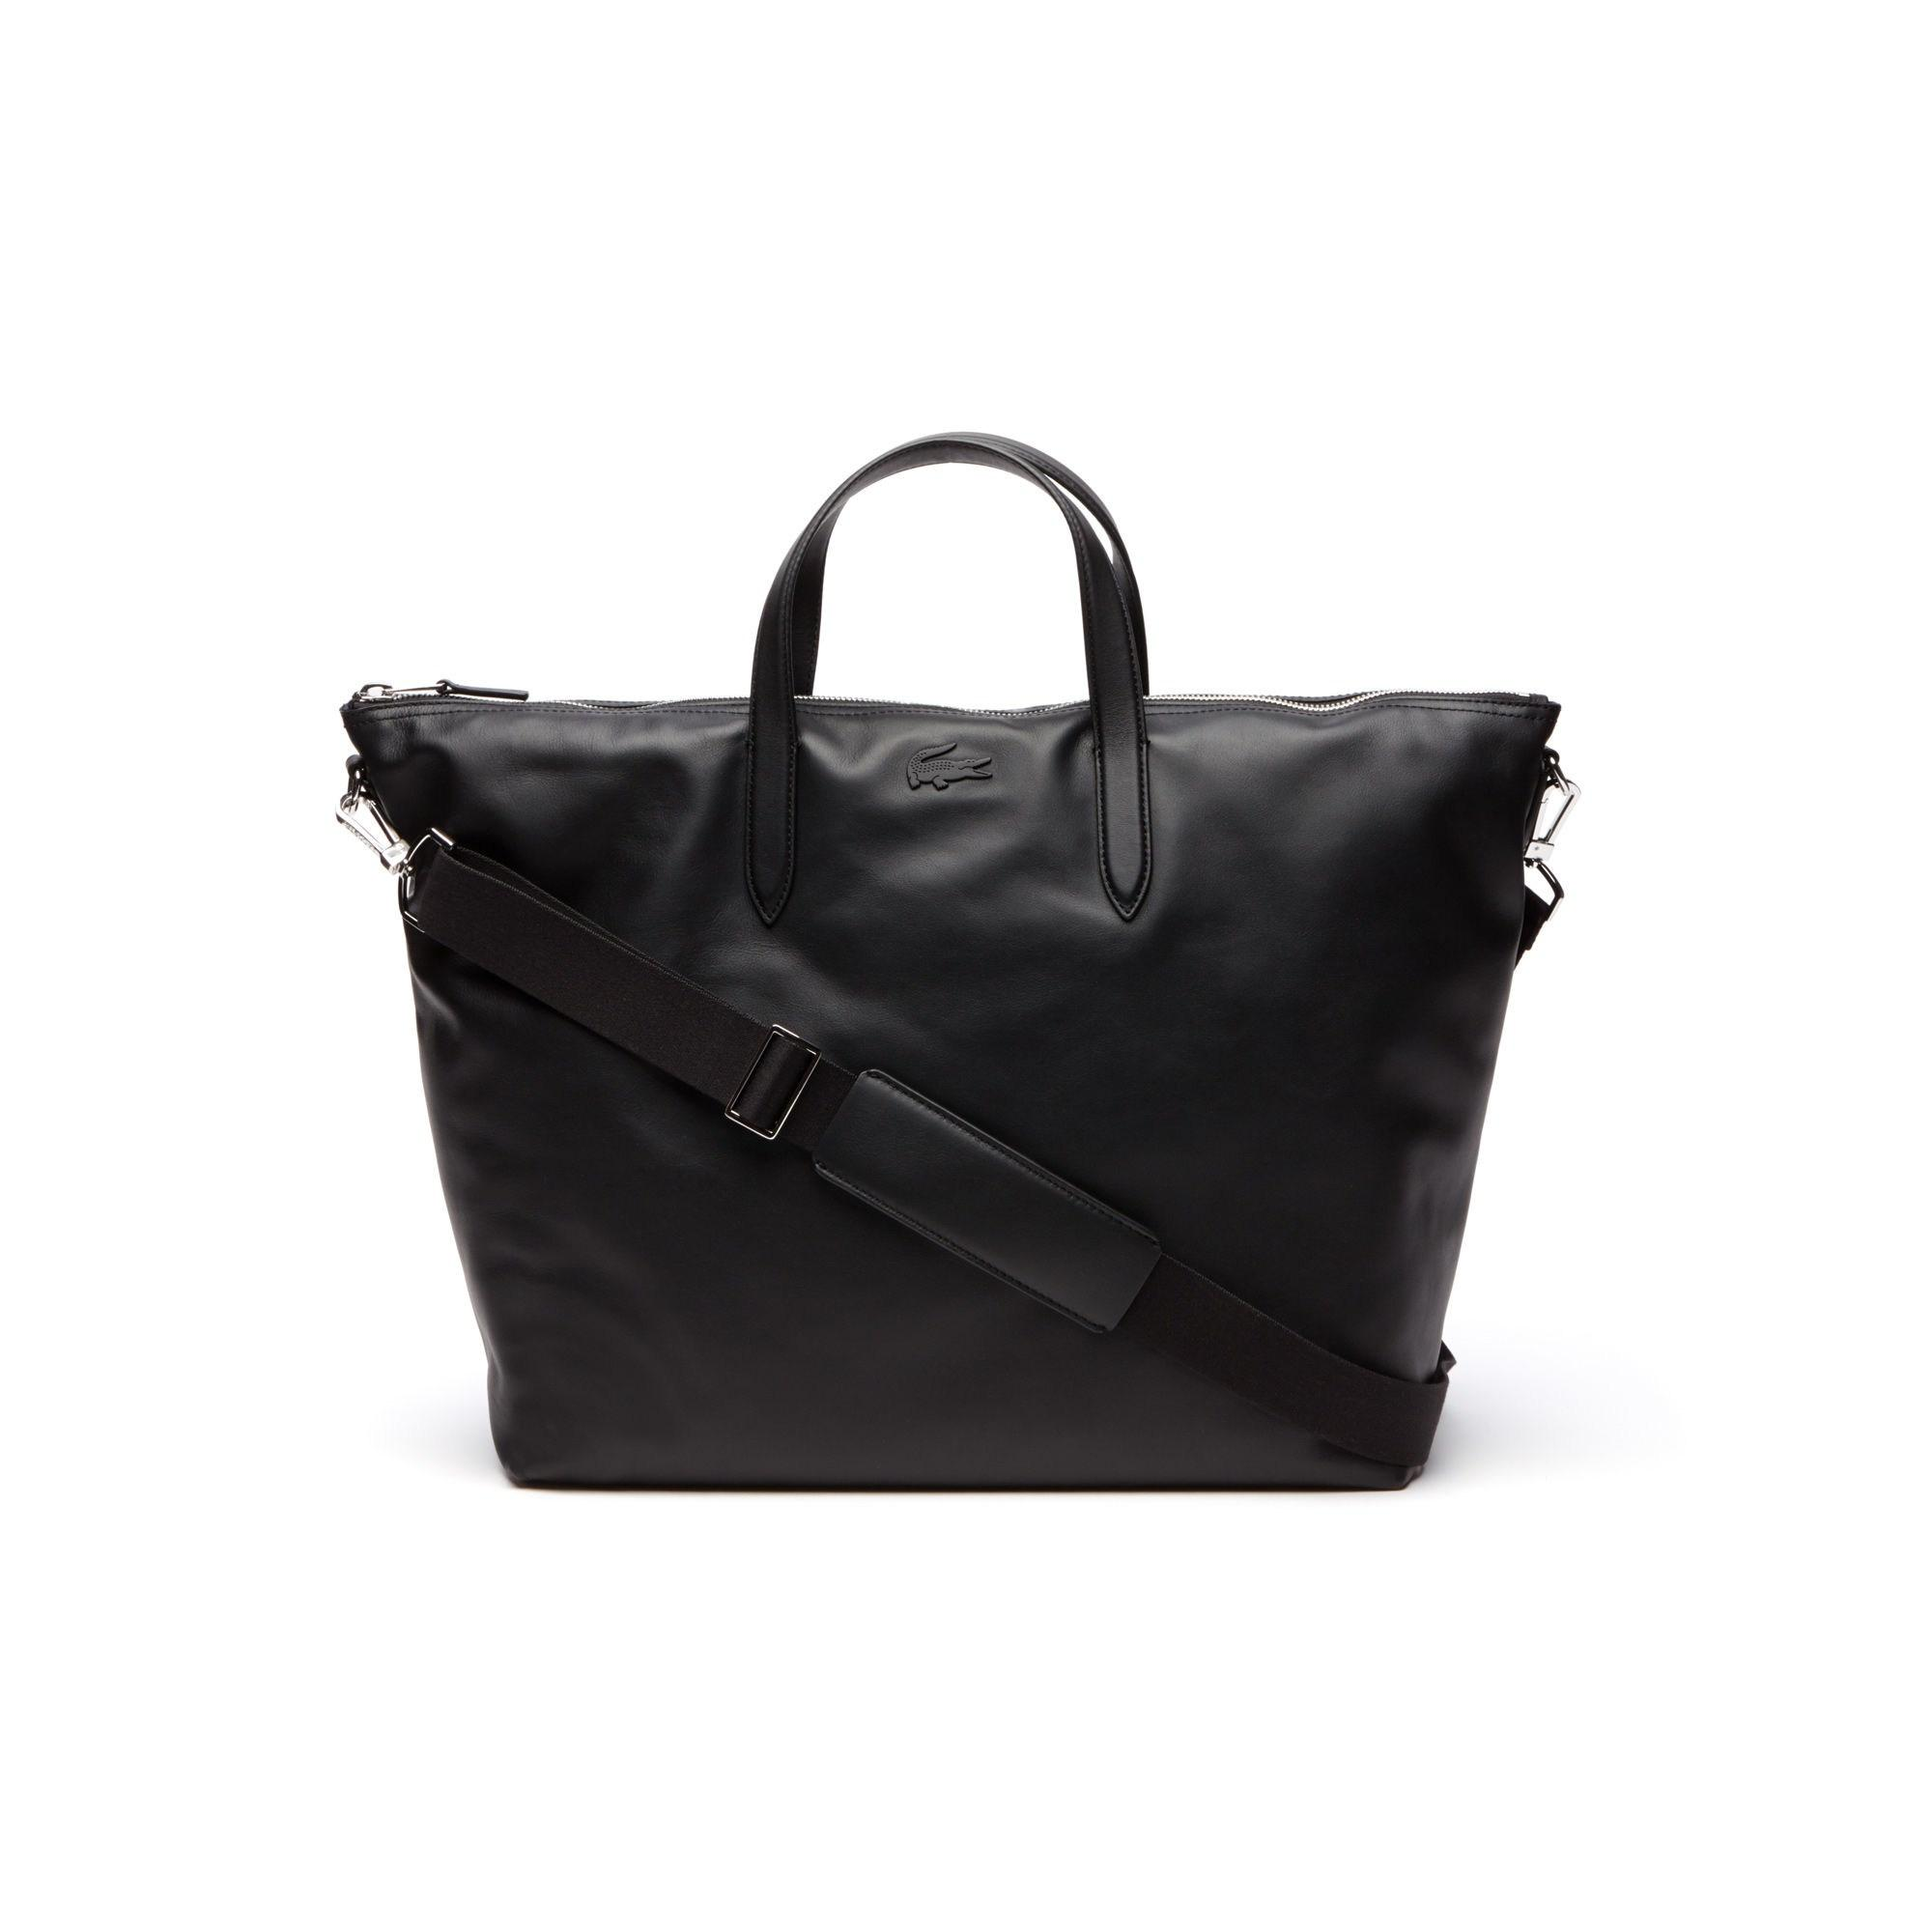 4a2c08740fa Lacoste - Black L.12.12 Business Large Leather Zip Tote for Men - Lyst.  View fullscreen